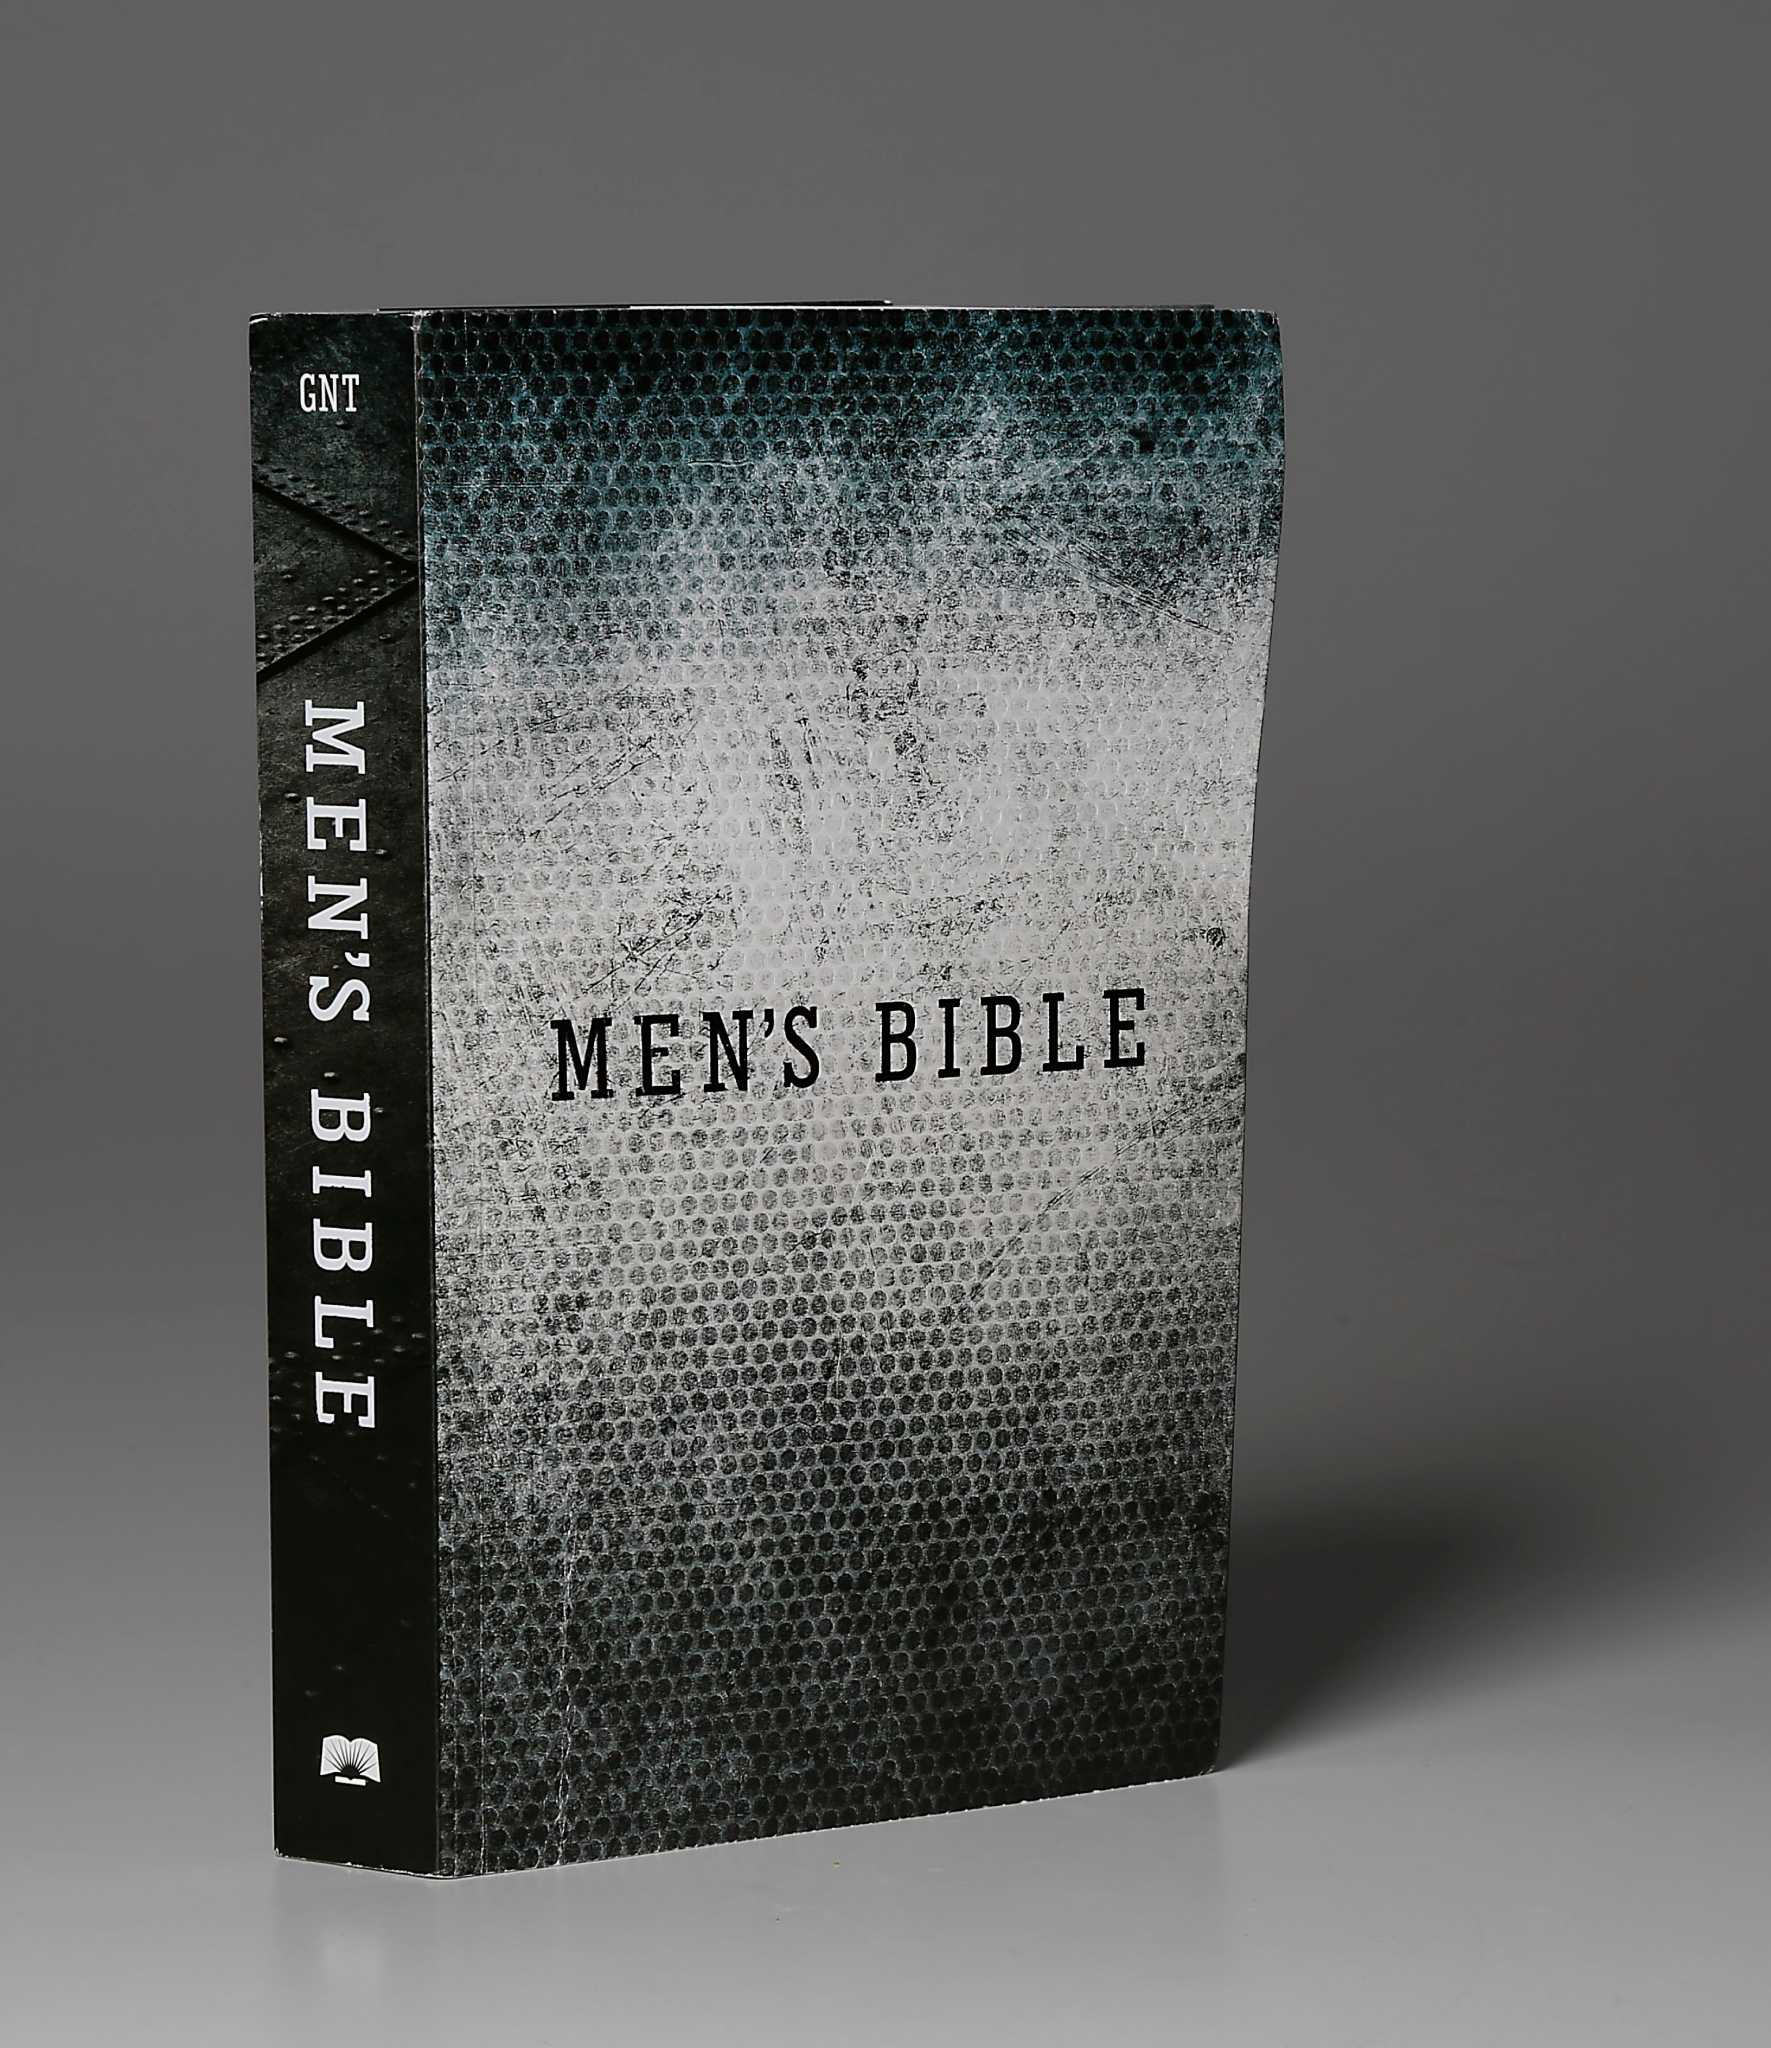 New Bible addresses men's challenges in modern life